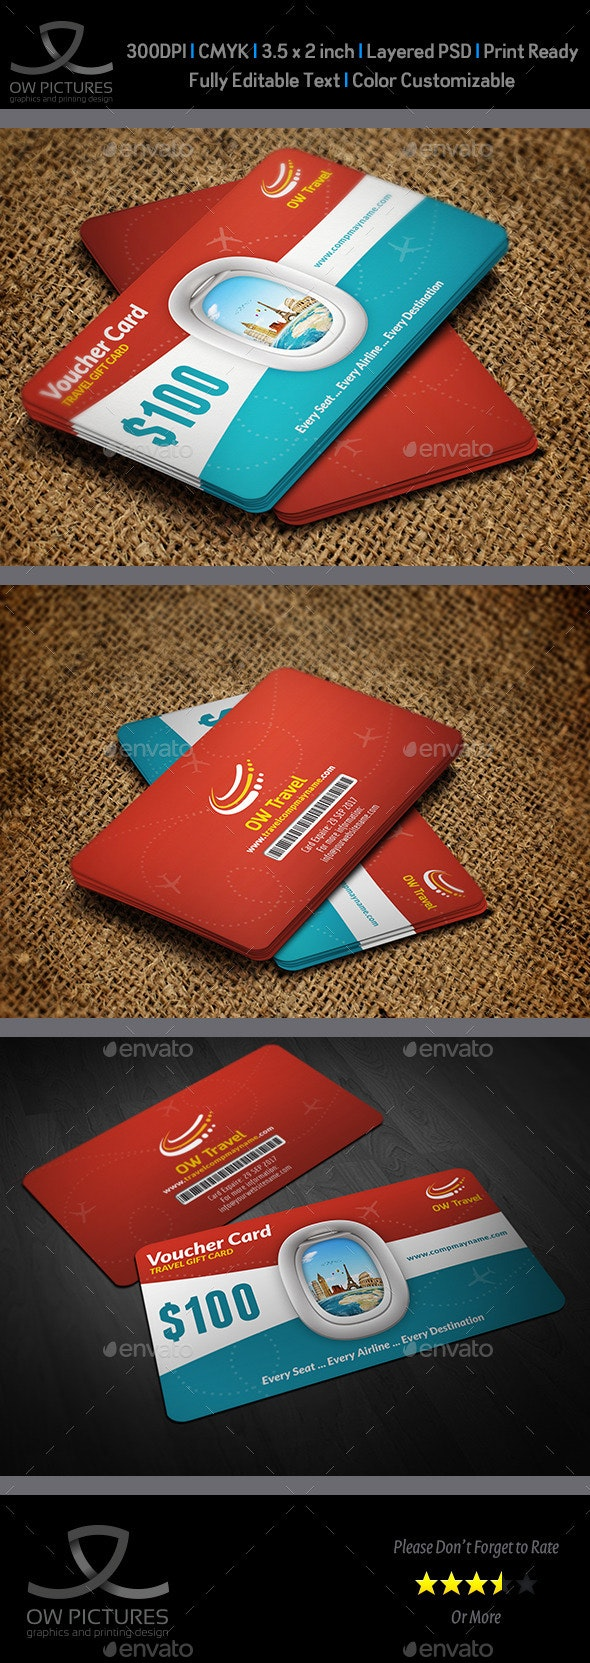 Travel Gift Voucher Card Template Vol.17 - Cards & Invites Print Templates